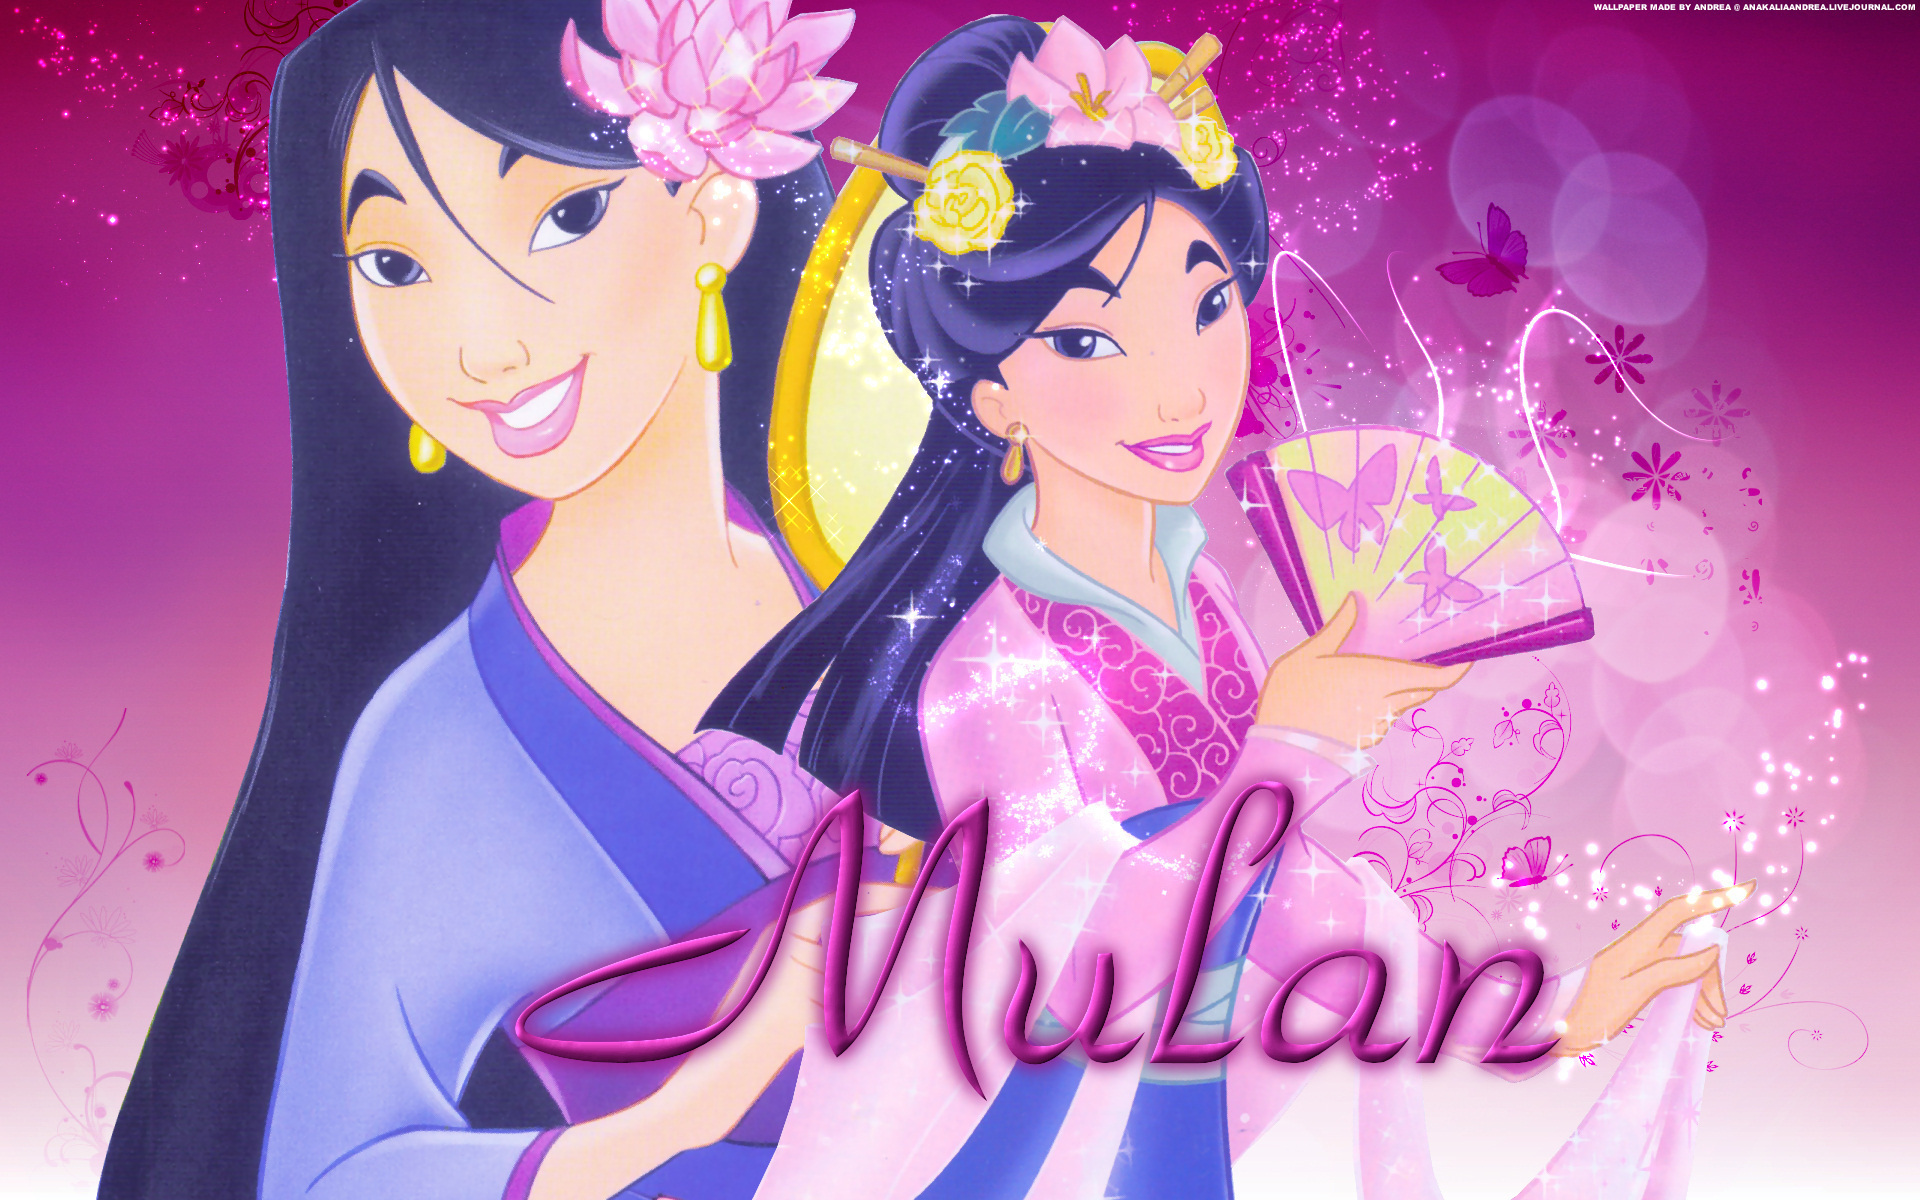 Princess Mulan cartoon Disney